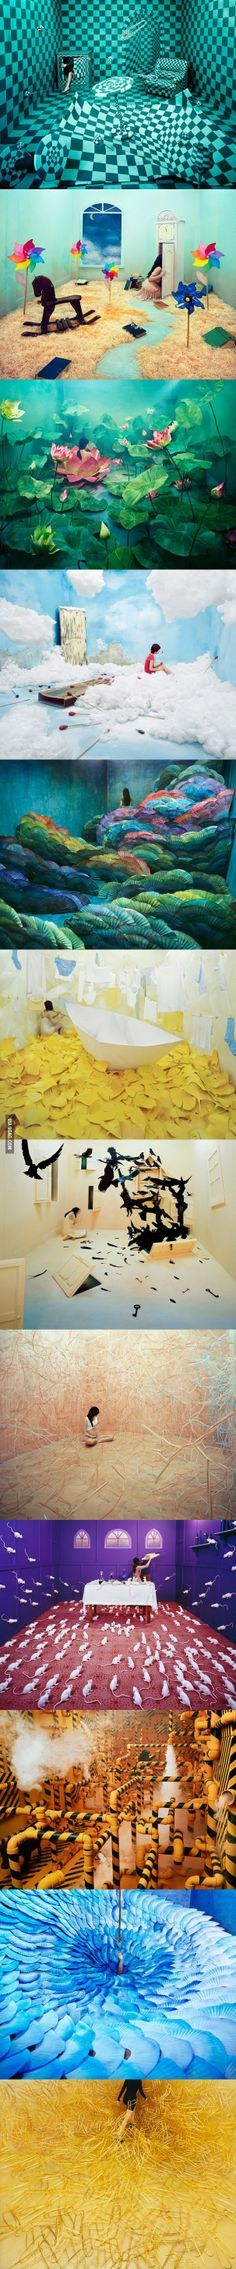 JeeYoung Lee, a Korean artist, creates amazing scenes without using any digital manipulation